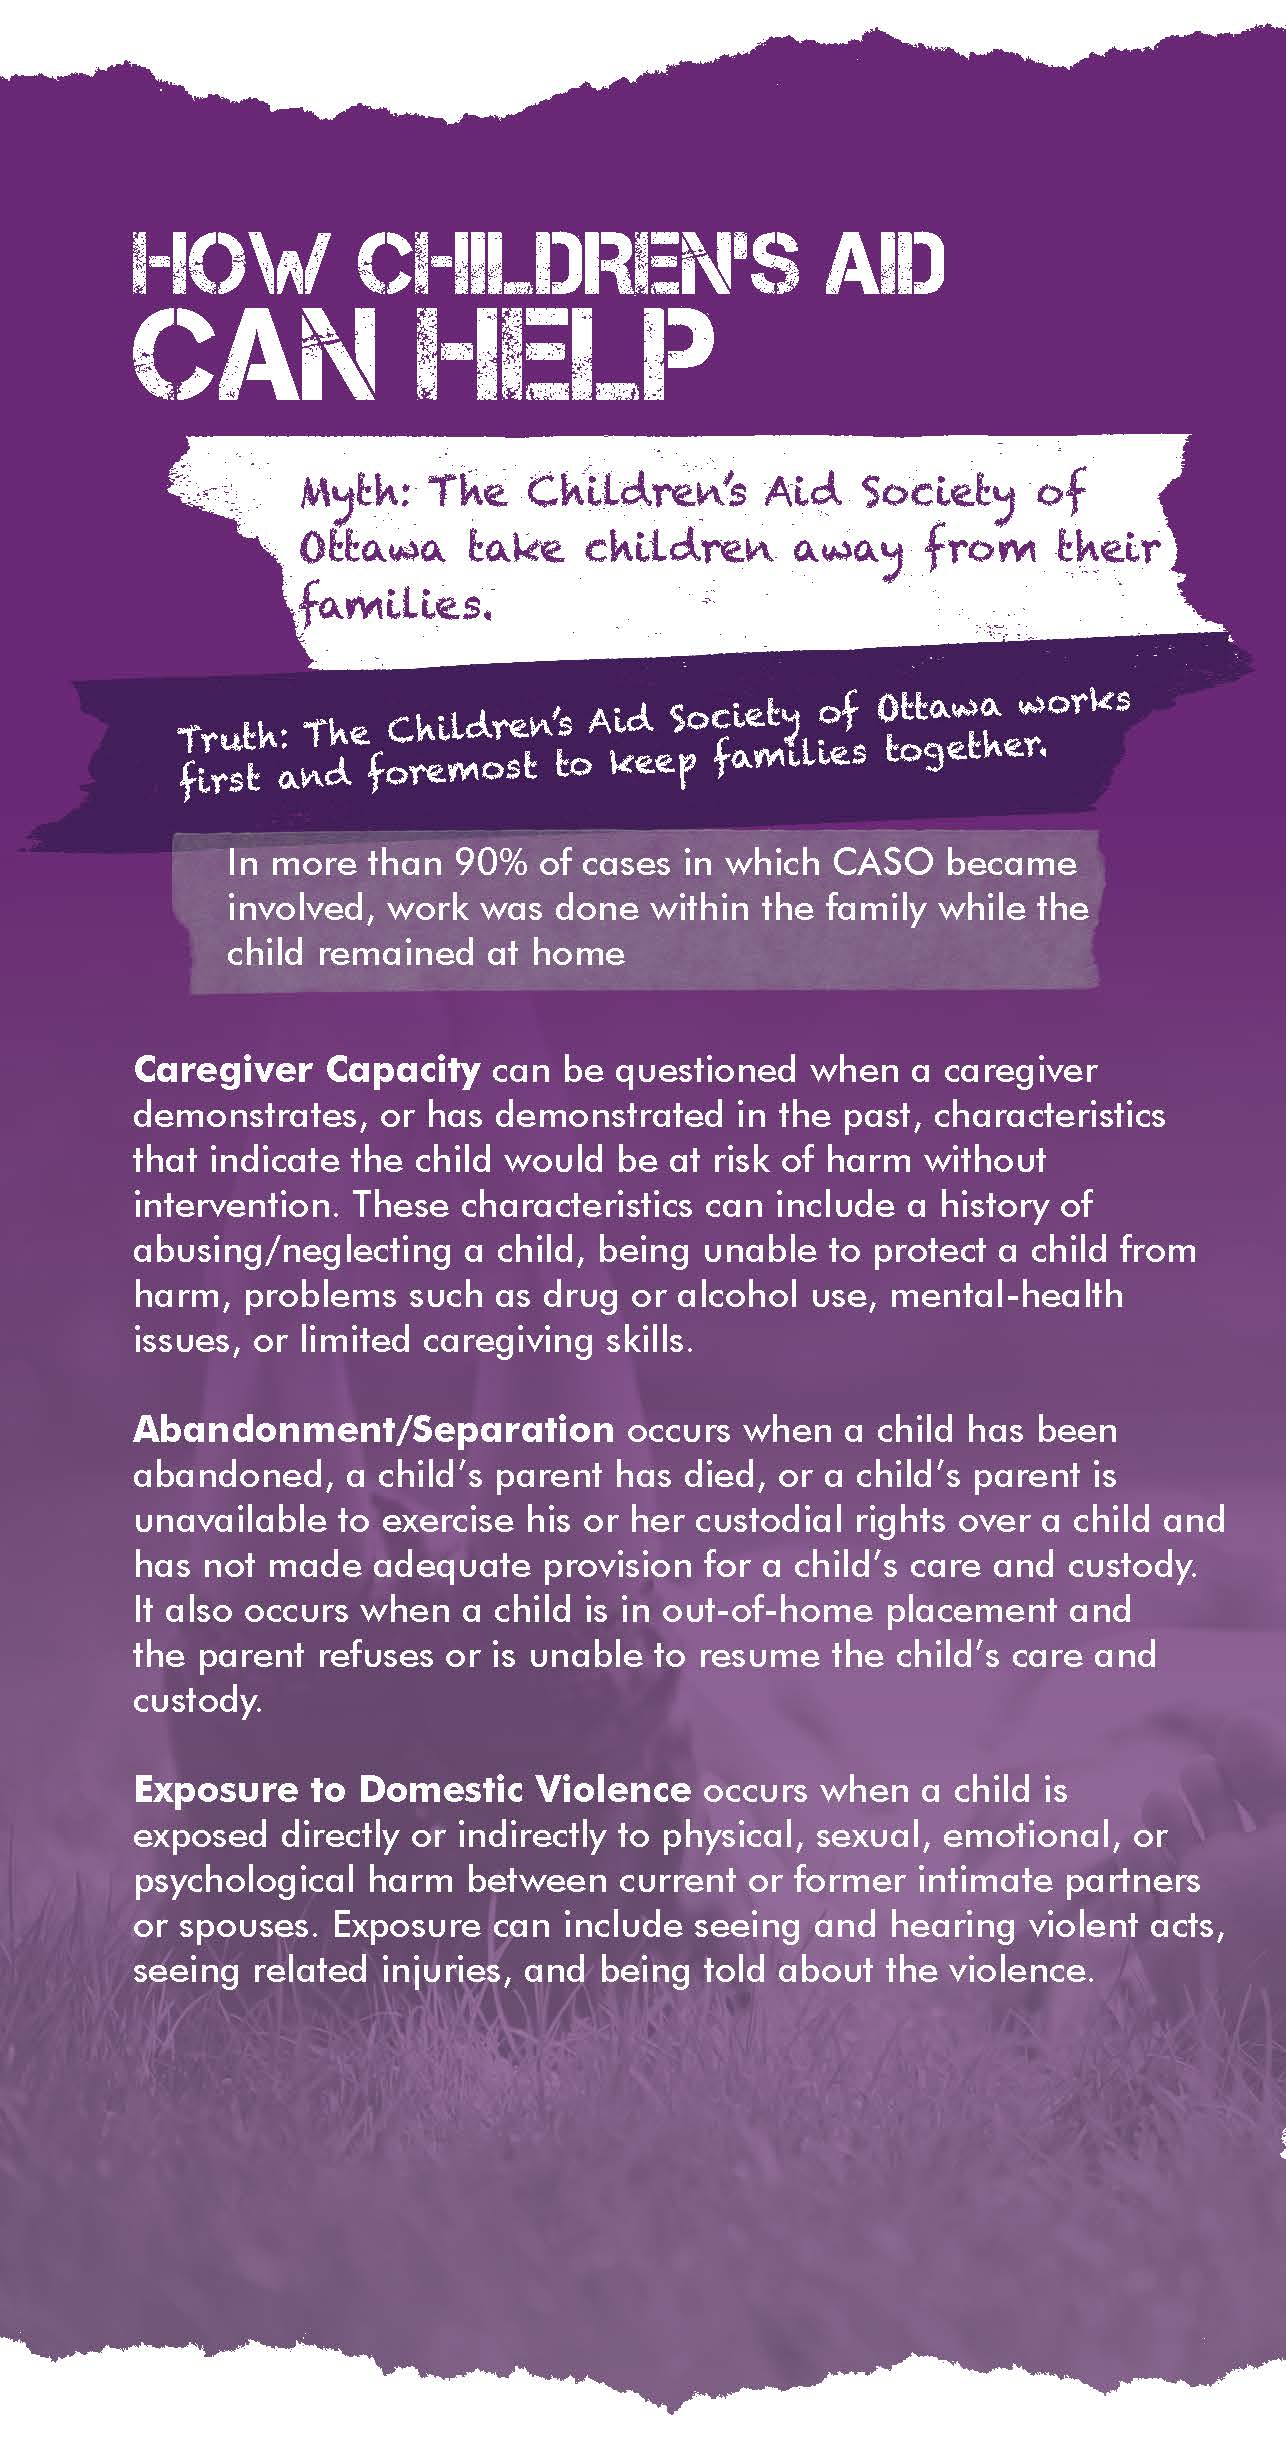 Web Update - How Childrens Aid Can Help